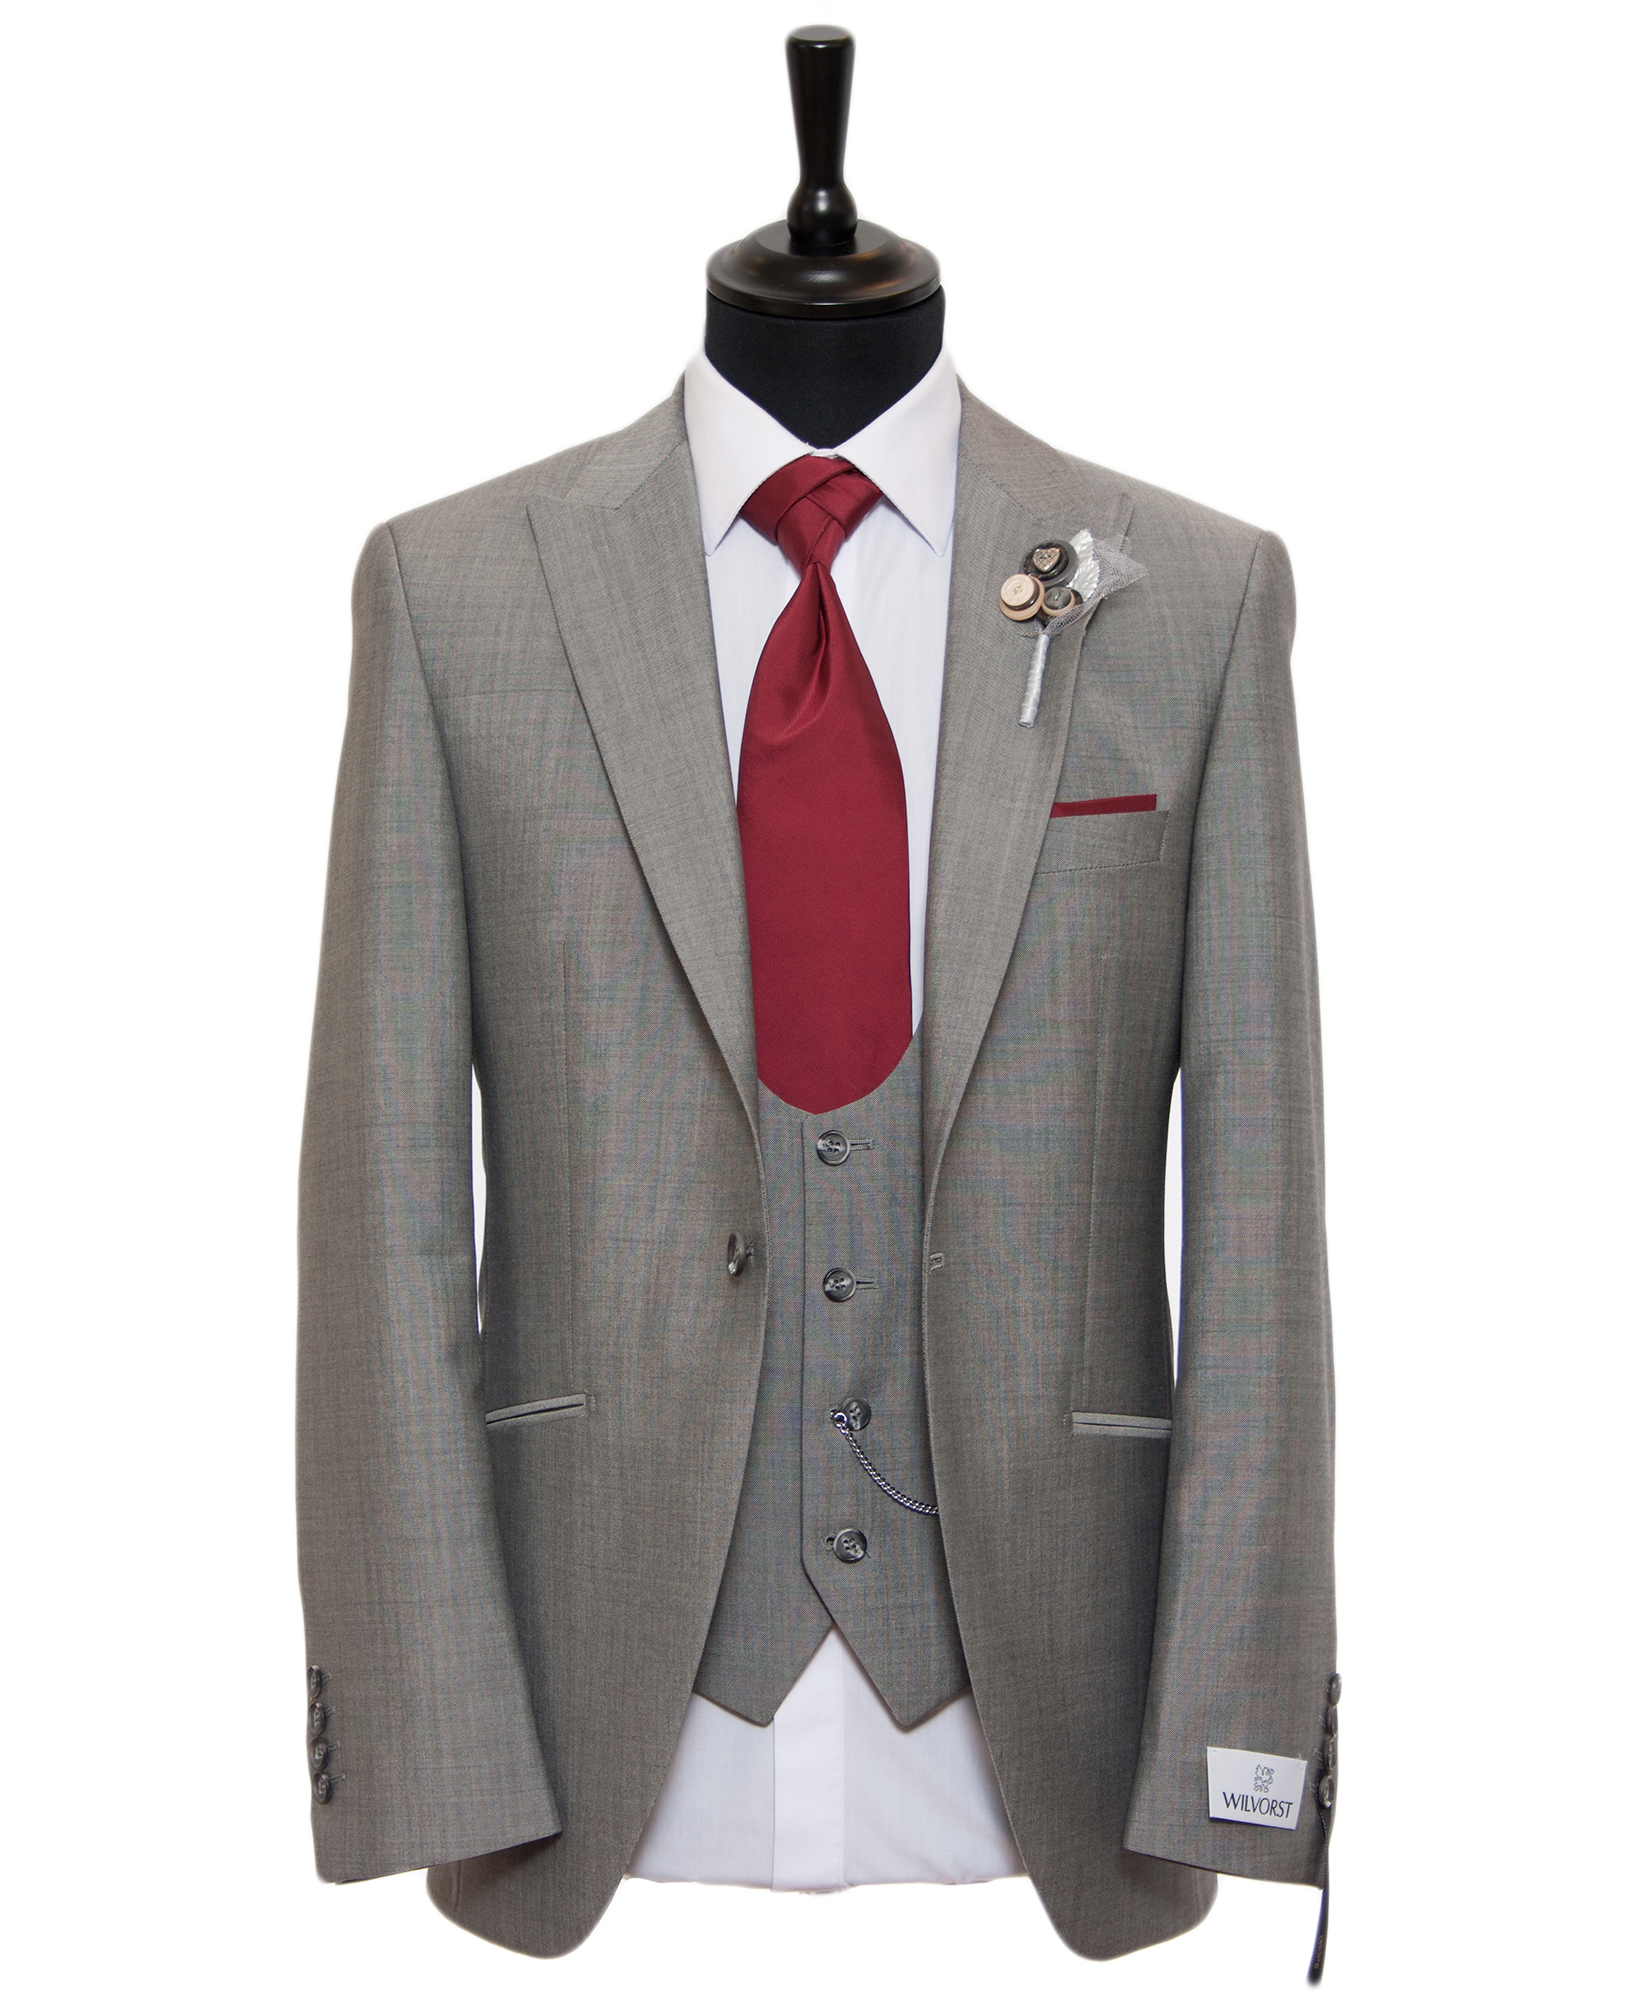 01_ascot grey carlton lounge suit.jpg: 6510 bytes